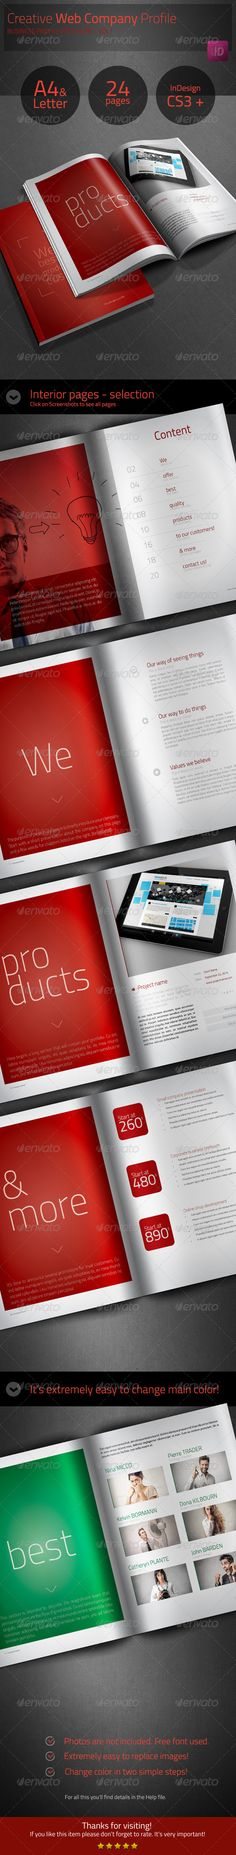 12 best corporate brochure examples images on pinterest corporate